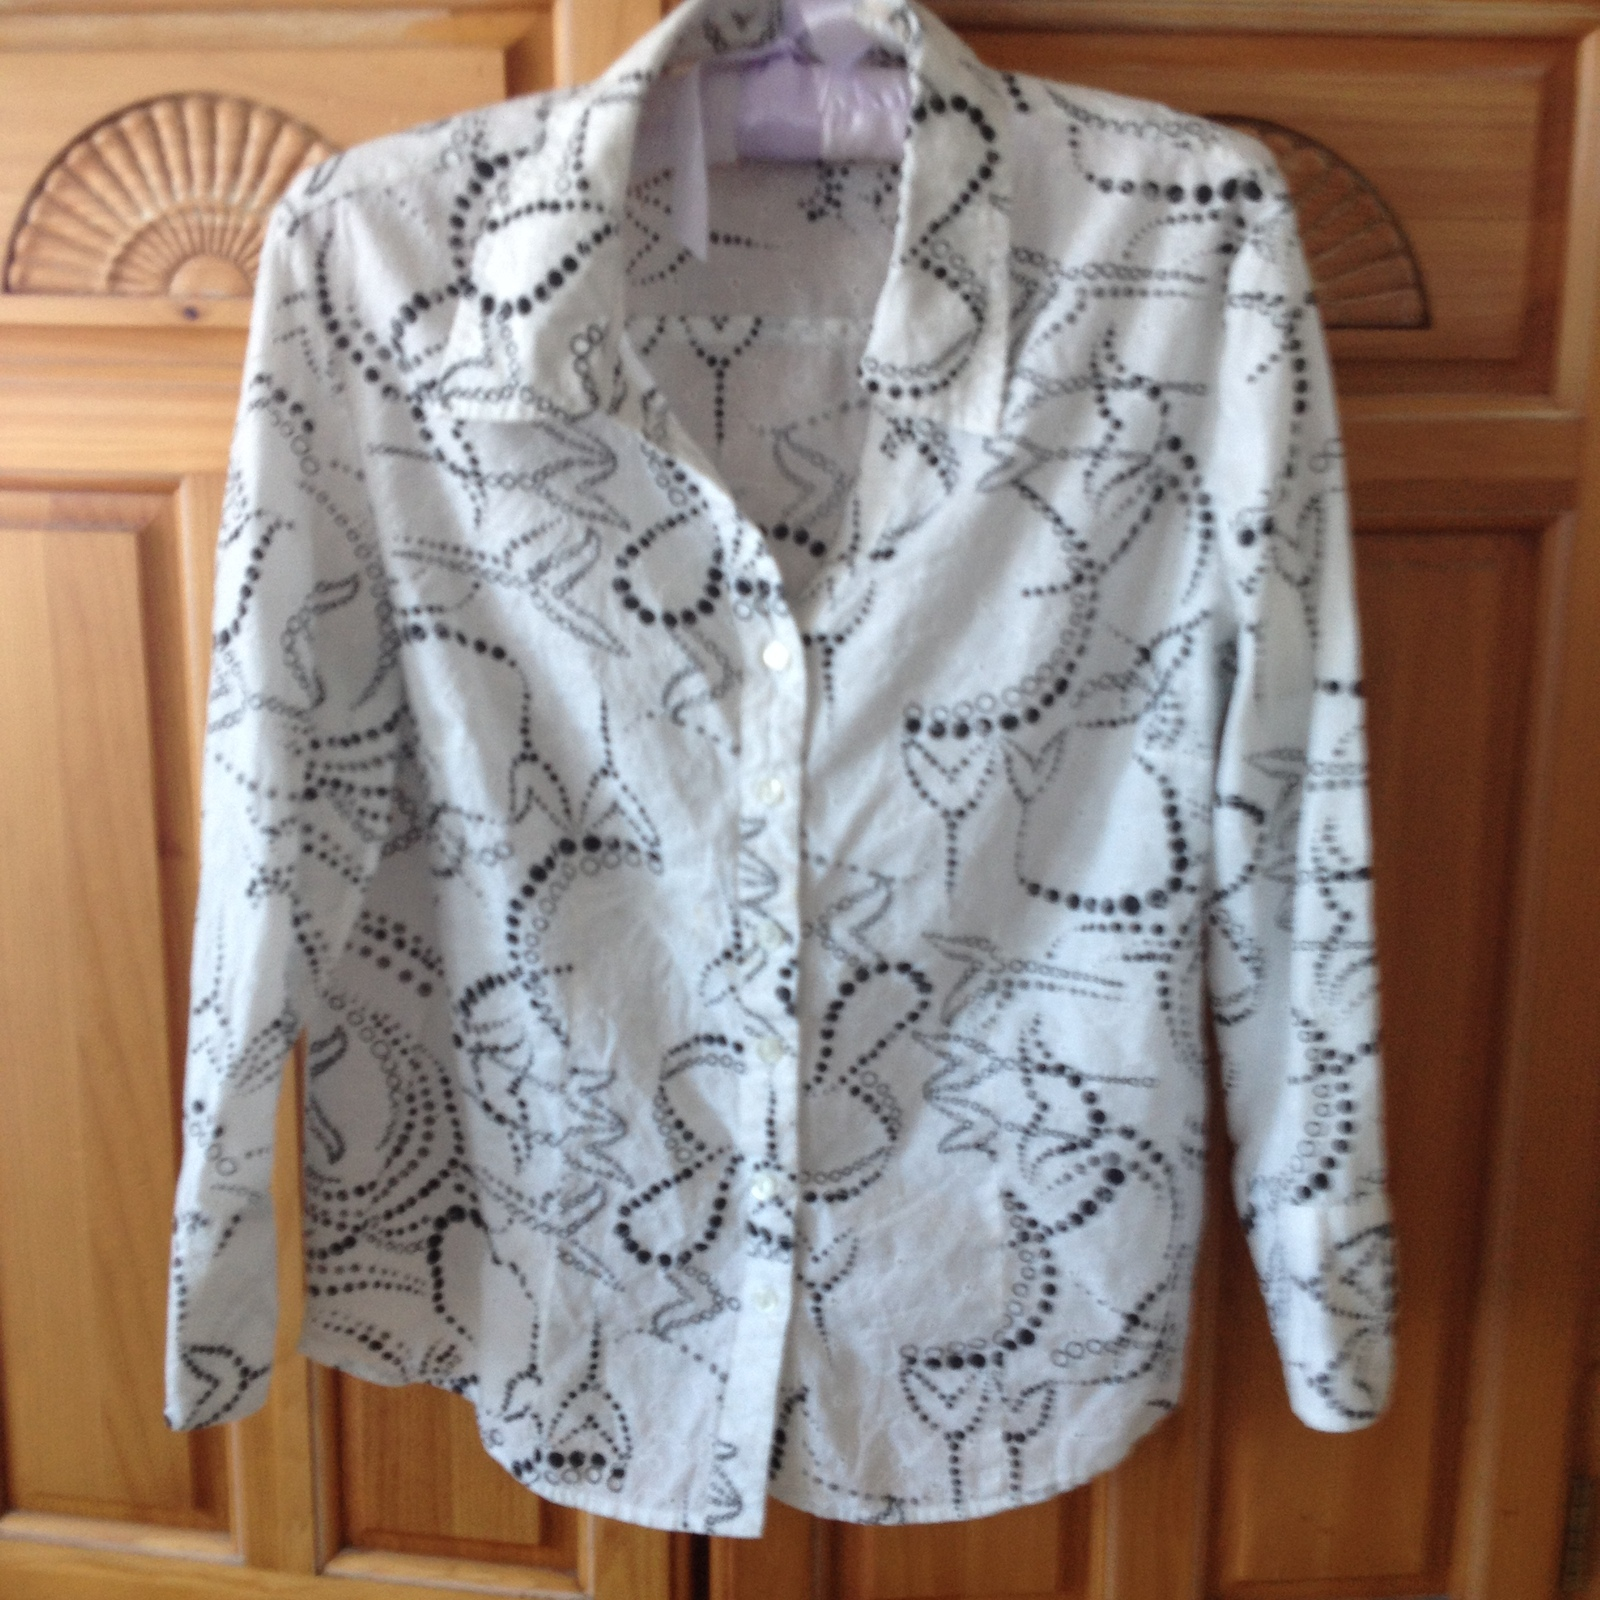 Womens Black & White Blouse Size 10 100% Cotton by JM Collection